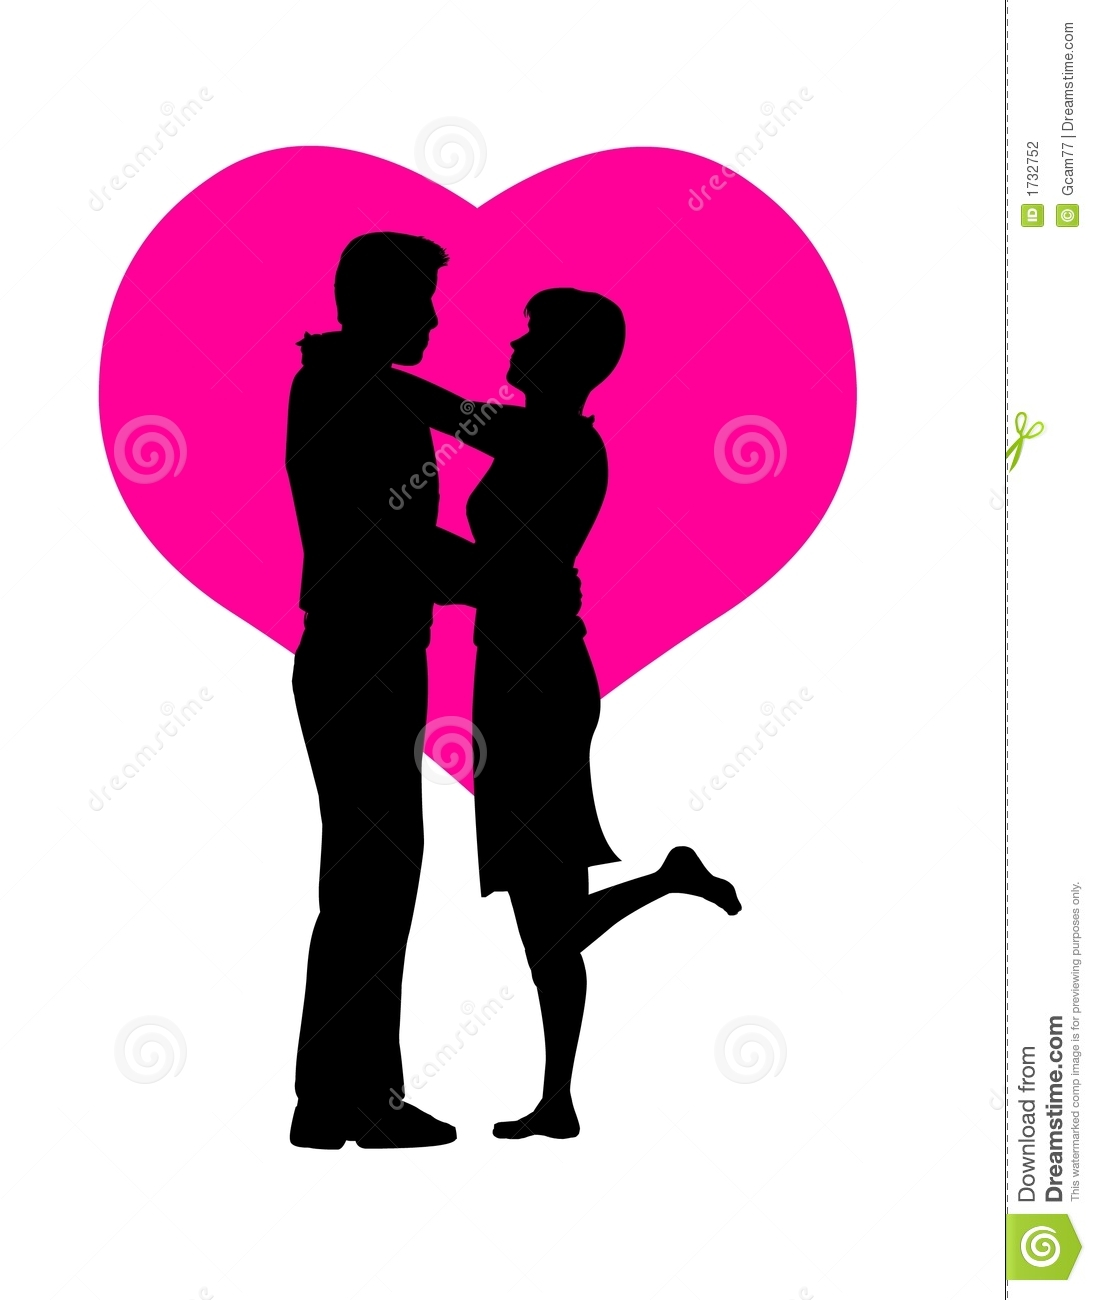 1095x1300 Romantic Cliparts